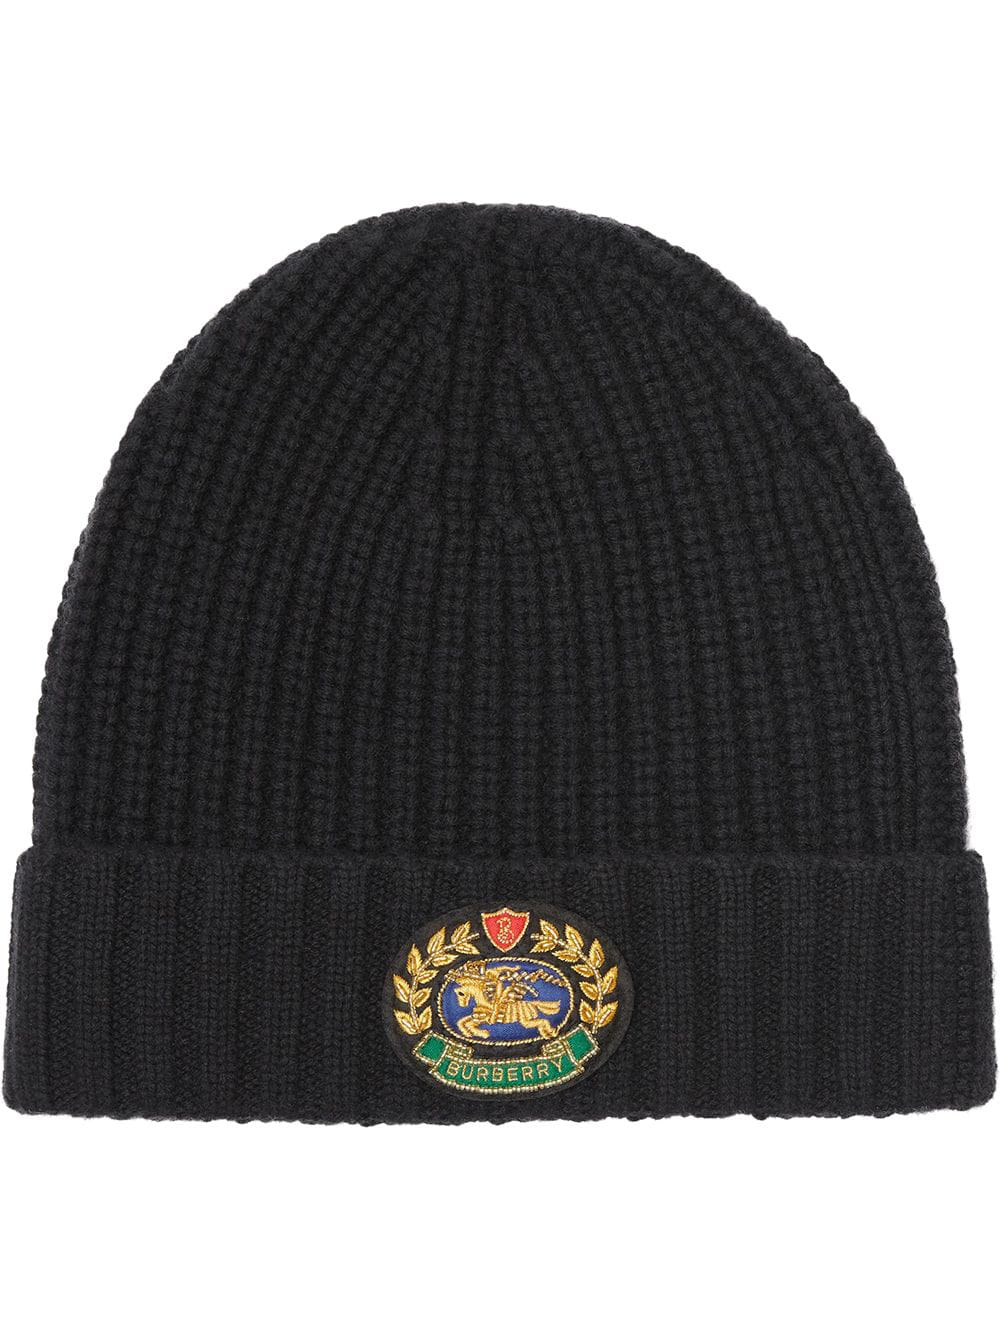 f6e40f4d792c9 Burberry Embroidered Crest Rib Knit Wool Cashmere Beanie - Black ...